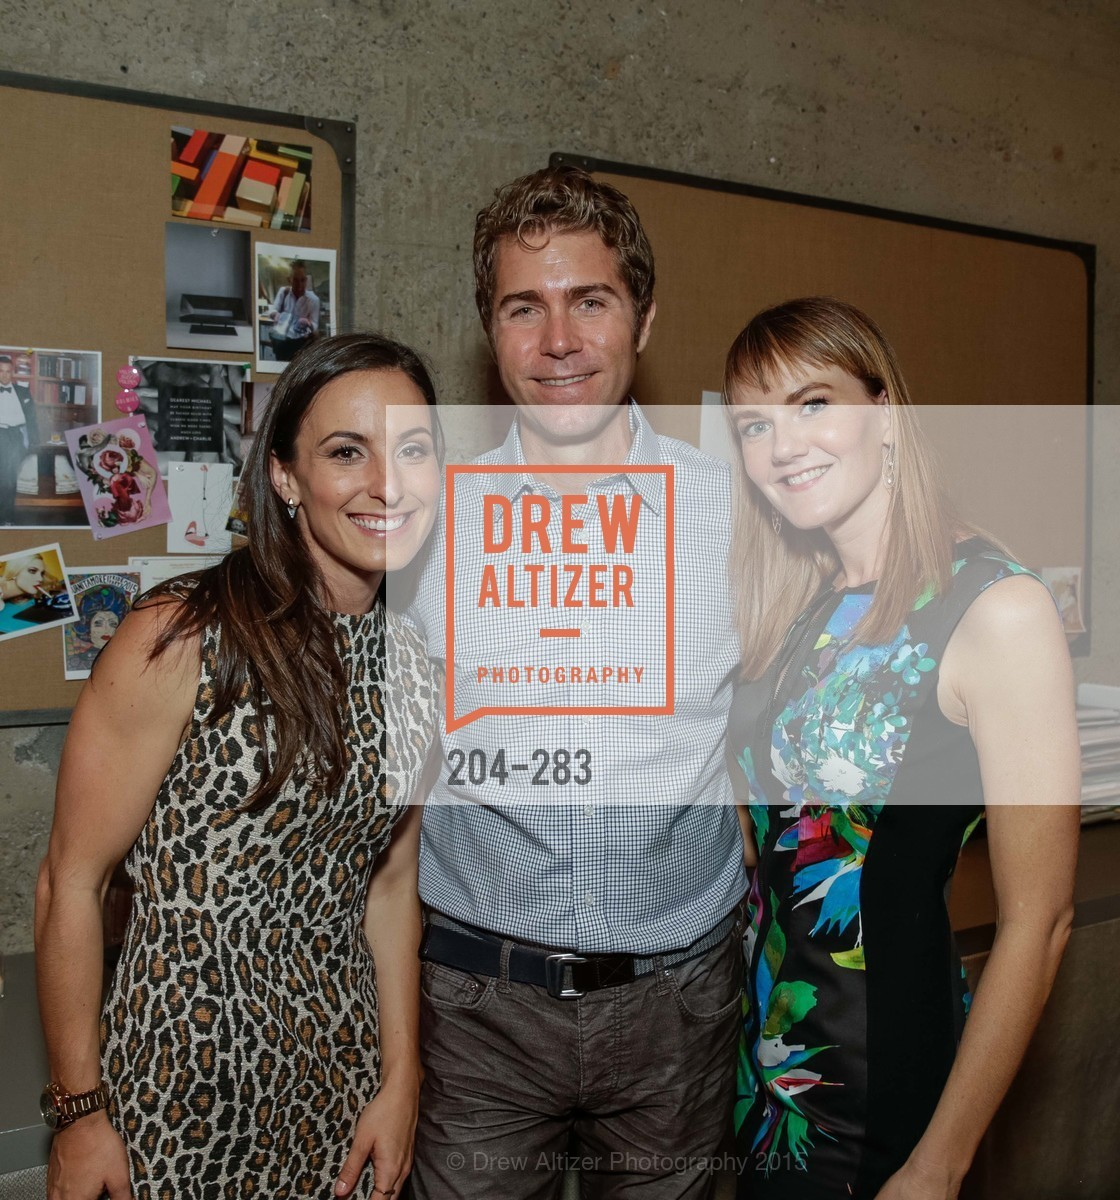 Ana Freedenfeld, Brad Coy, Ginger Coy, Jay Jeffers Host Will Harlan, Jay Jeffers CAVALIER. 1035 Post Street, San Francisco 94109, September 10th, 2015,Drew Altizer, Drew Altizer Photography, full-service agency, private events, San Francisco photographer, photographer california